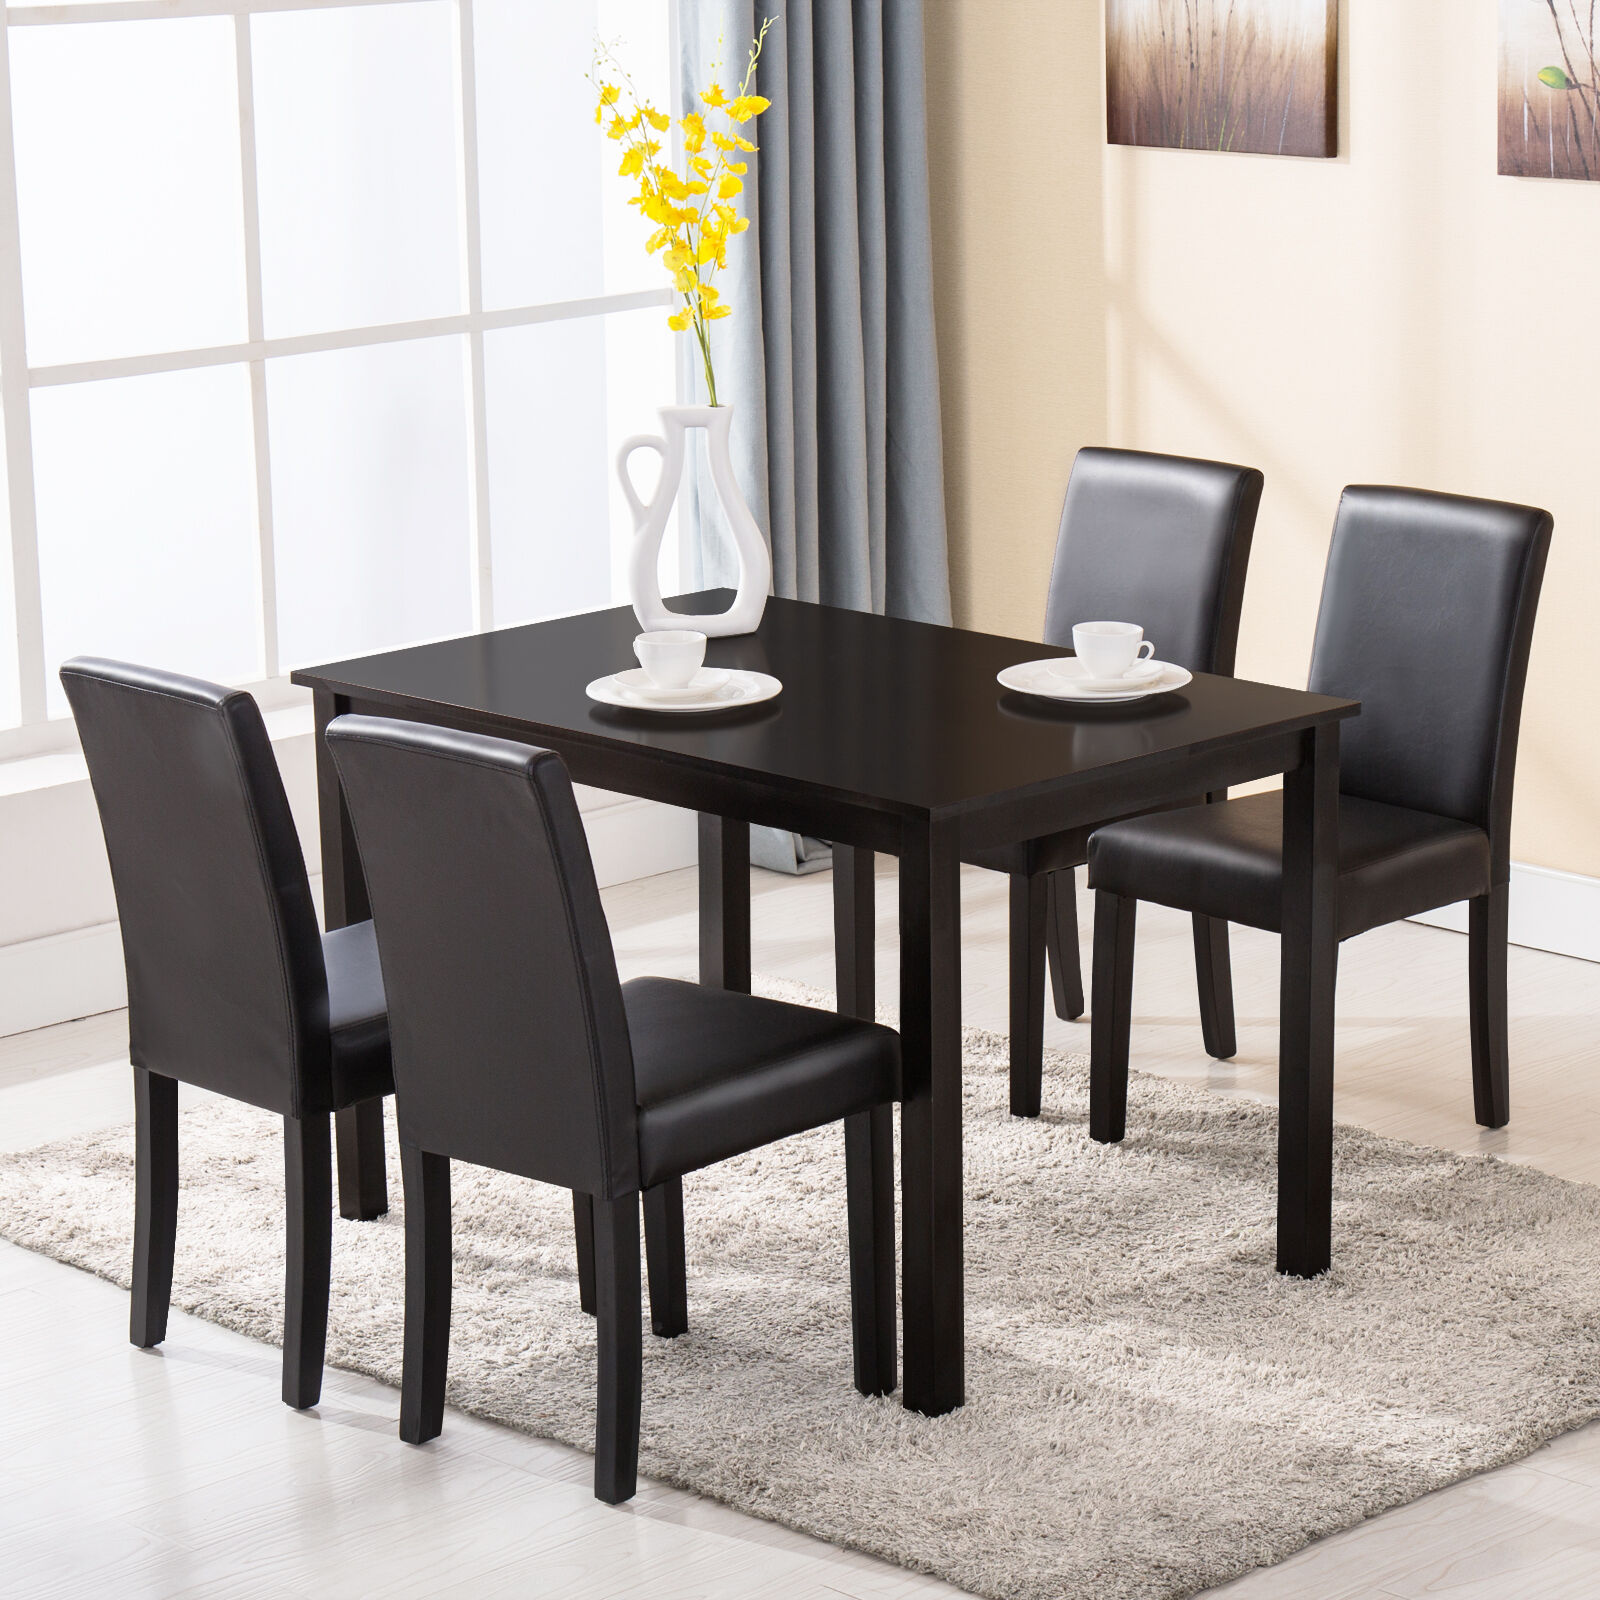 Room And Board Dining Chairs: 5 Piece Dining Table Set 4 Chairs Wood Kitchen Dinette